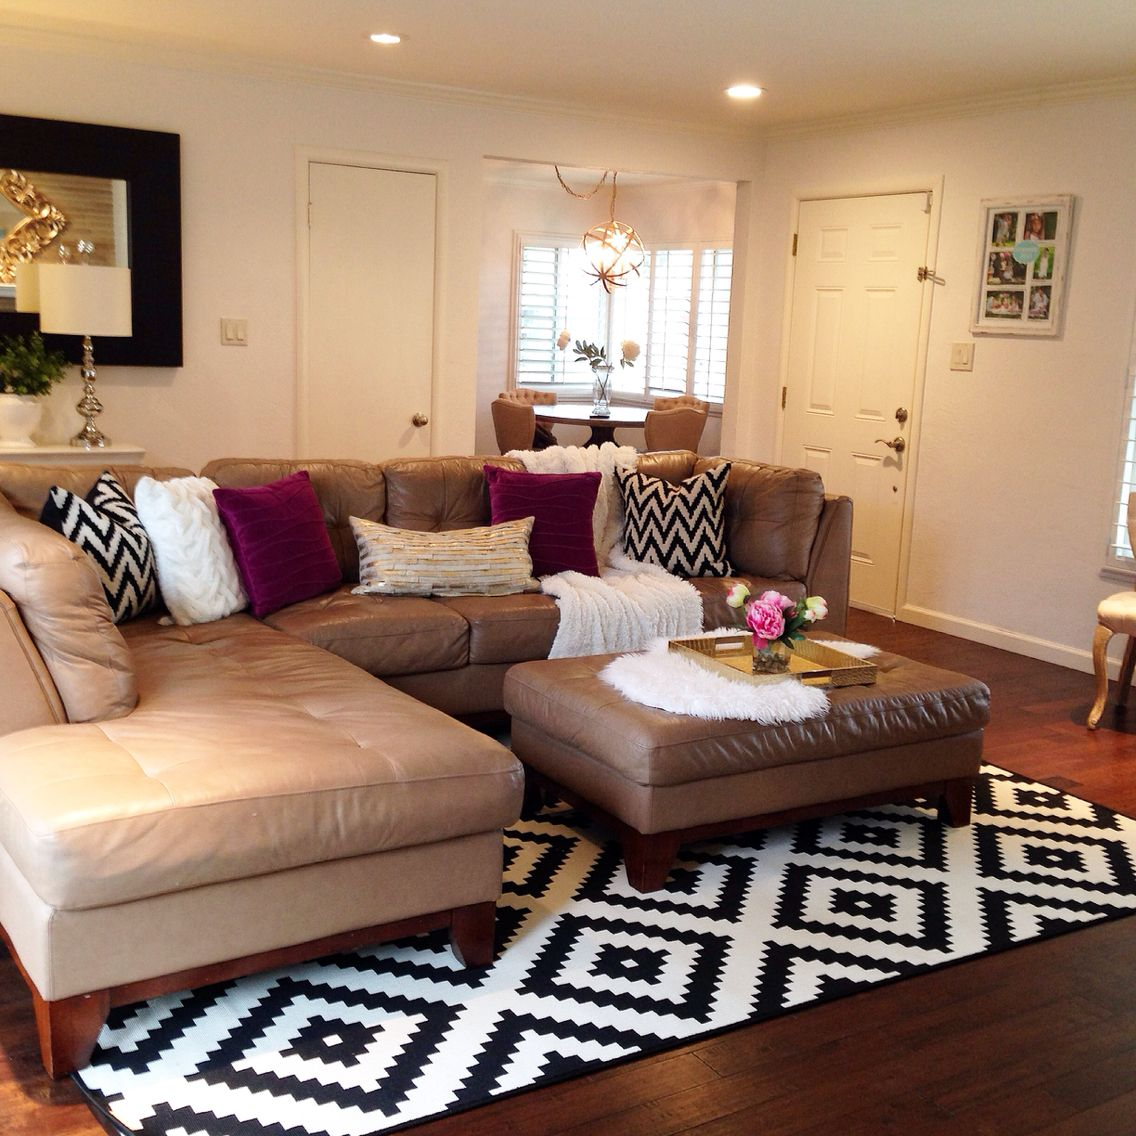 Black And White Area Rug In The Living Room Pops Of Fuschia Too